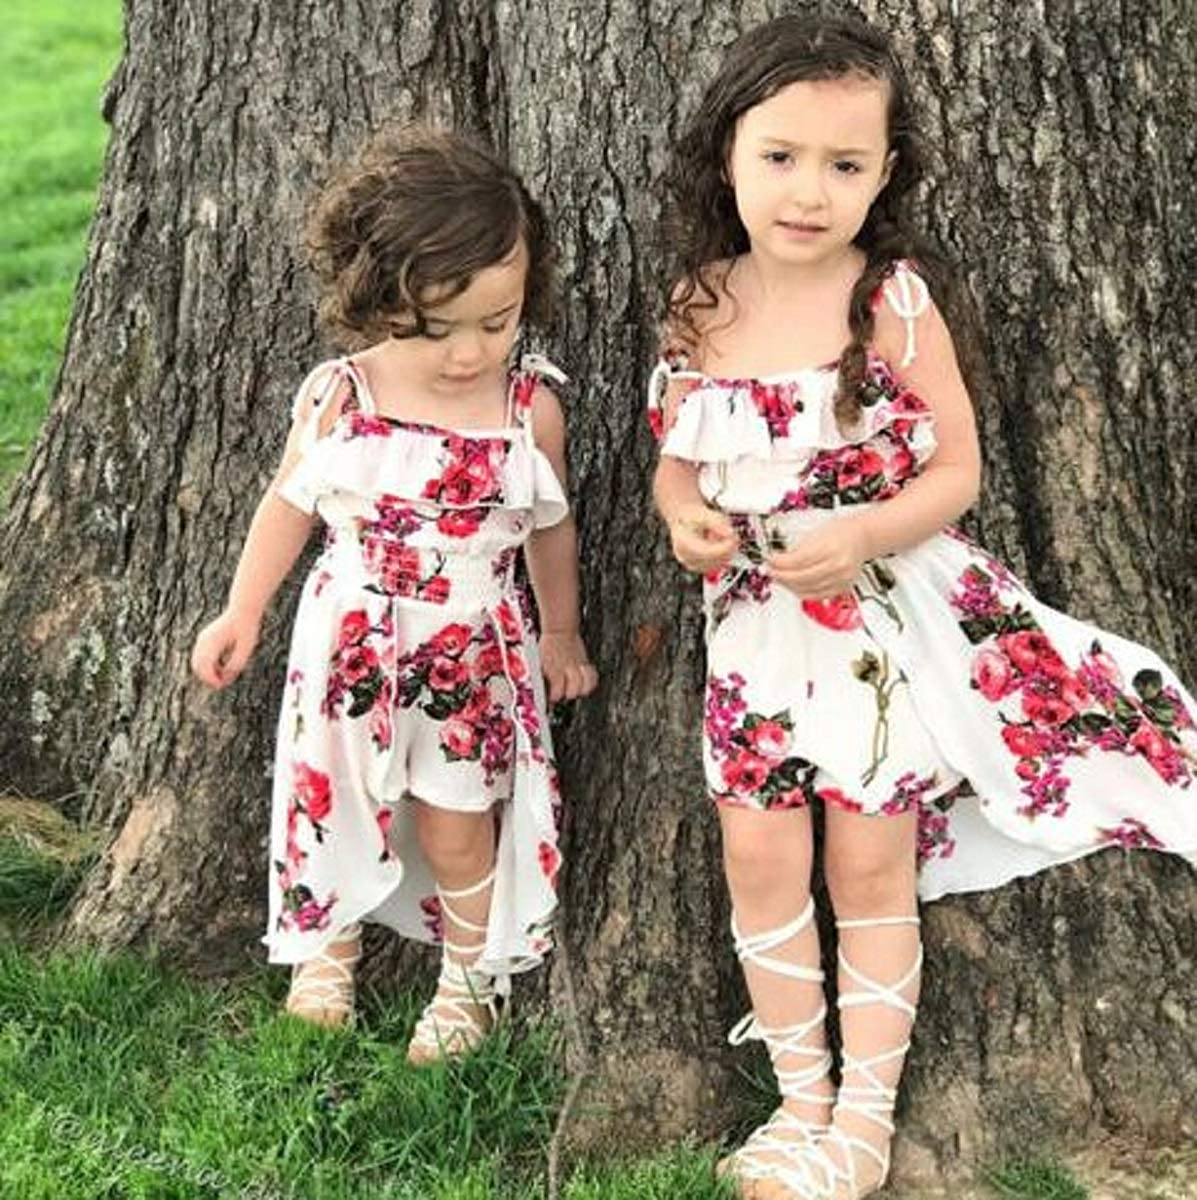 Preciashopping Floral Toddler Kids Baby Girl Clothes Romper Bodysuit Jumpsuit Outfits Dresses 6-12 Months Yellow